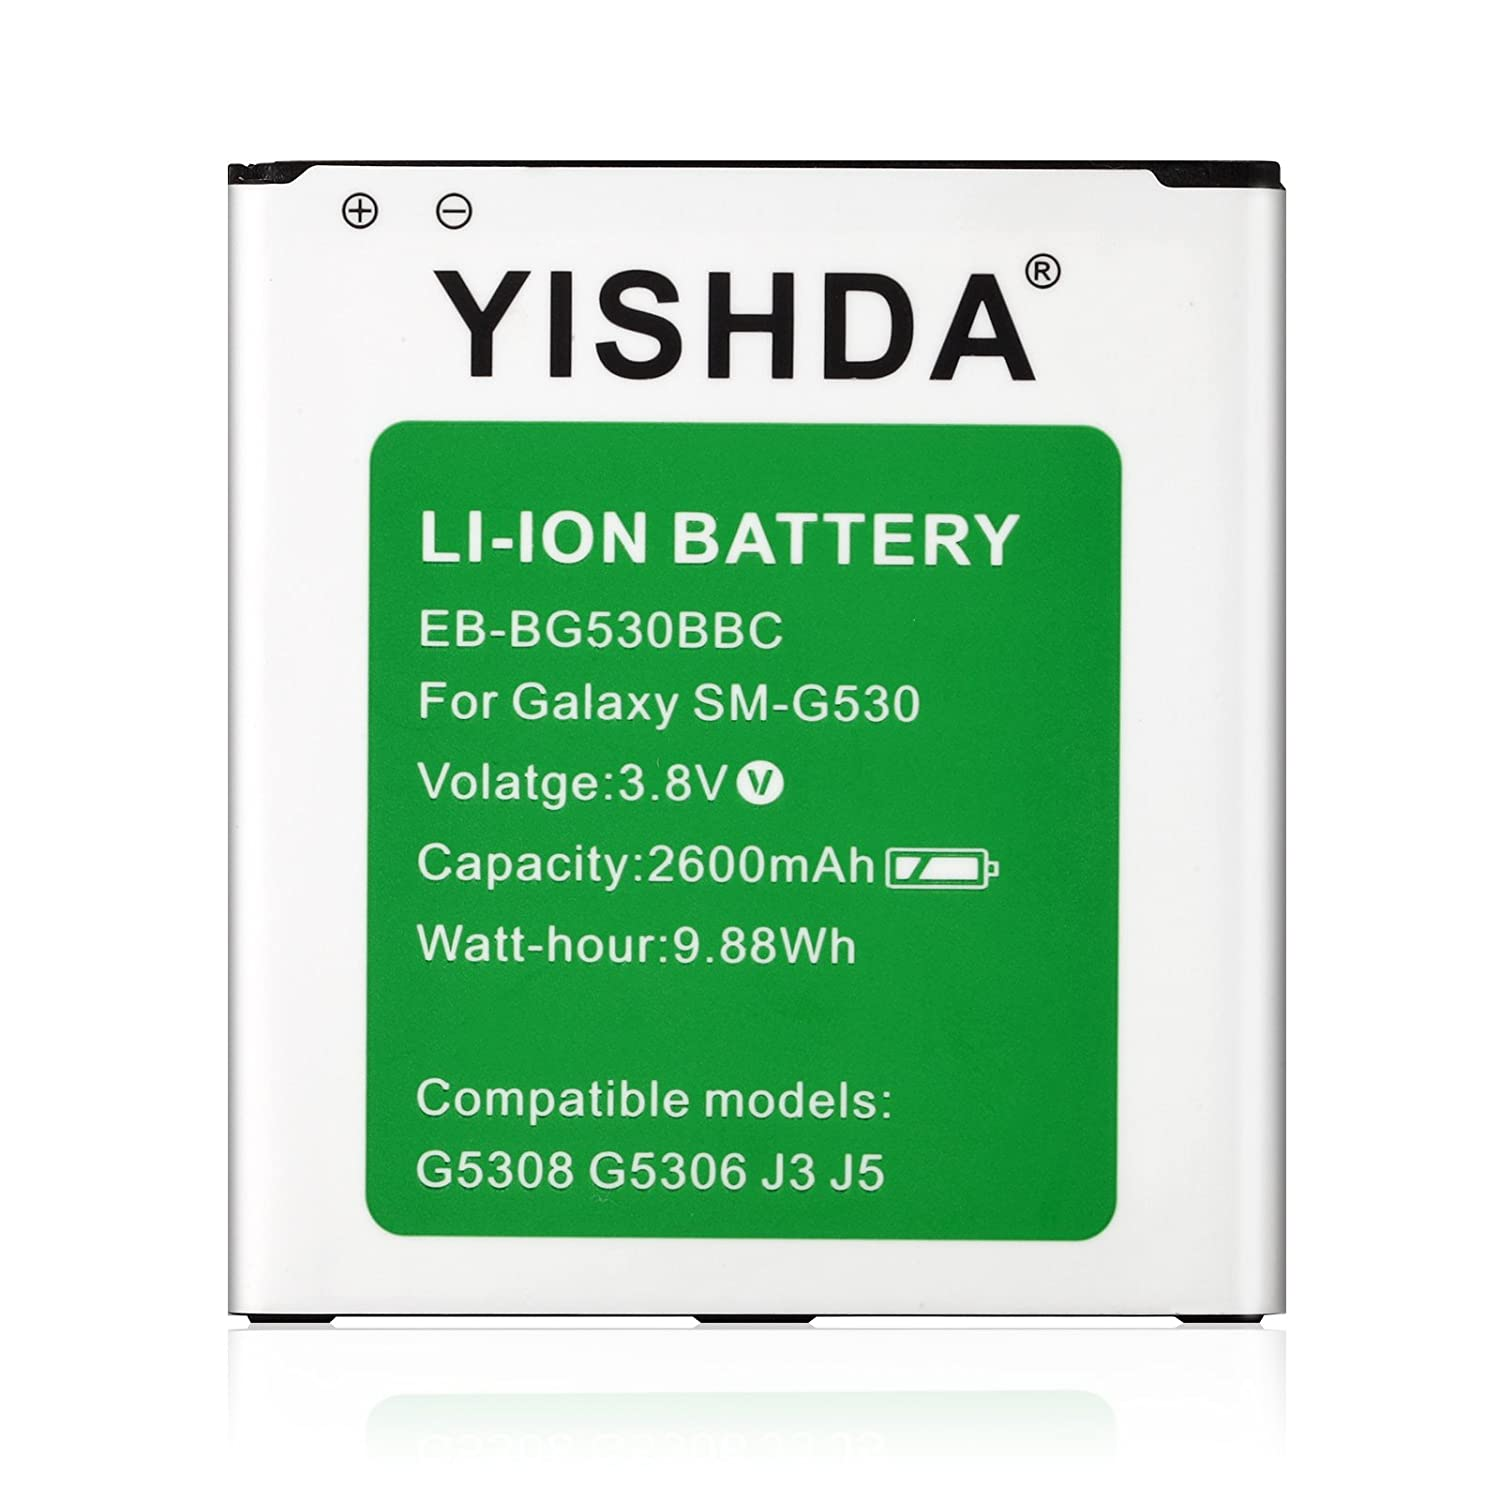 YISHDA 2600mAh Replacement EB-BG530BBC EB-BG530BBE EB-BG530BBU Battery for Samsung Galaxy Grand Prime G530 Galaxy J3 Galaxy J5 0200-048-005N